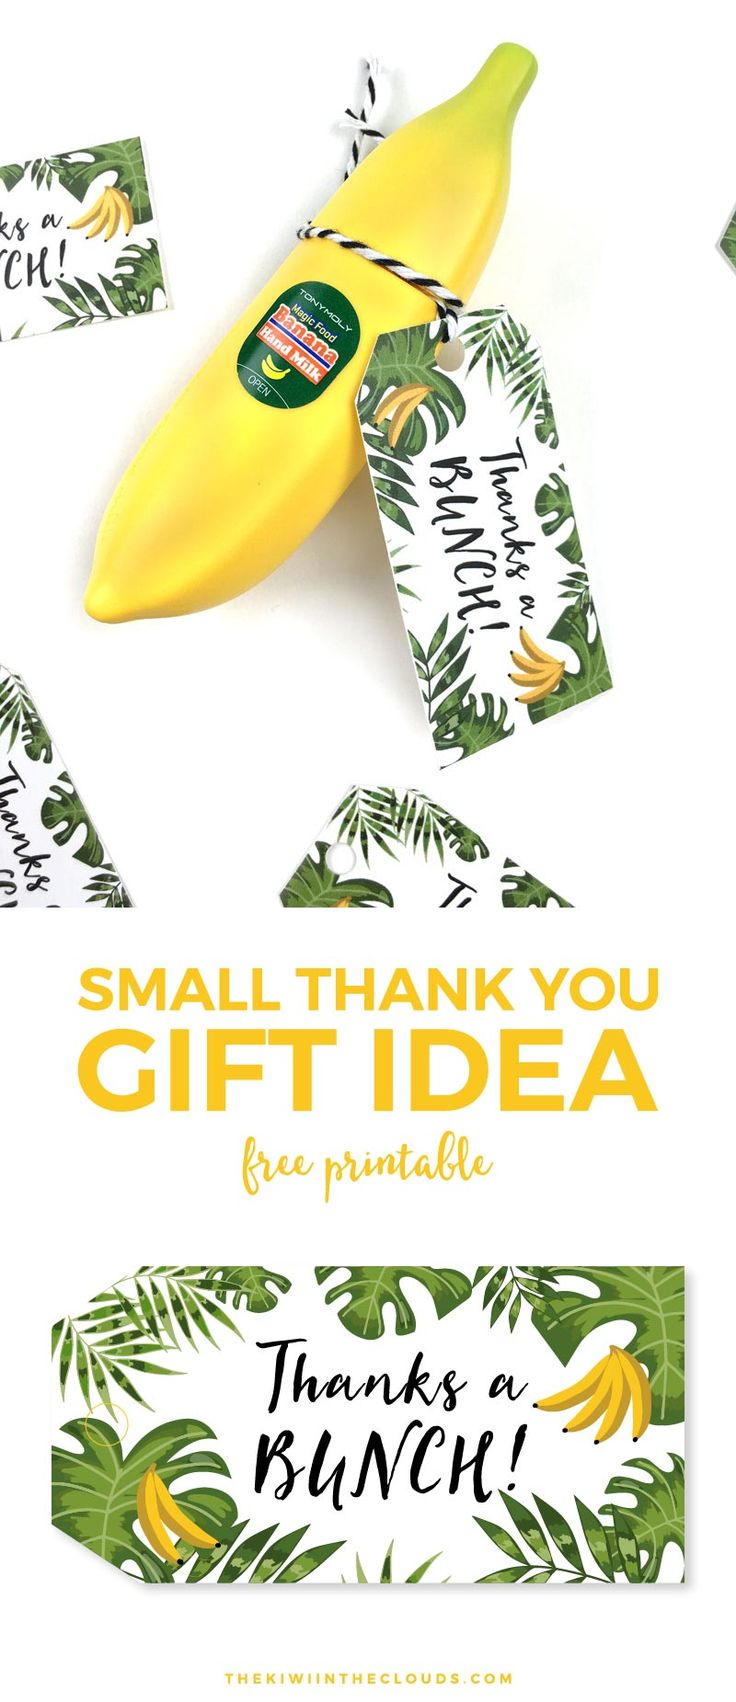 Small Thank You Gift This Small Thank You Gift Idea Is